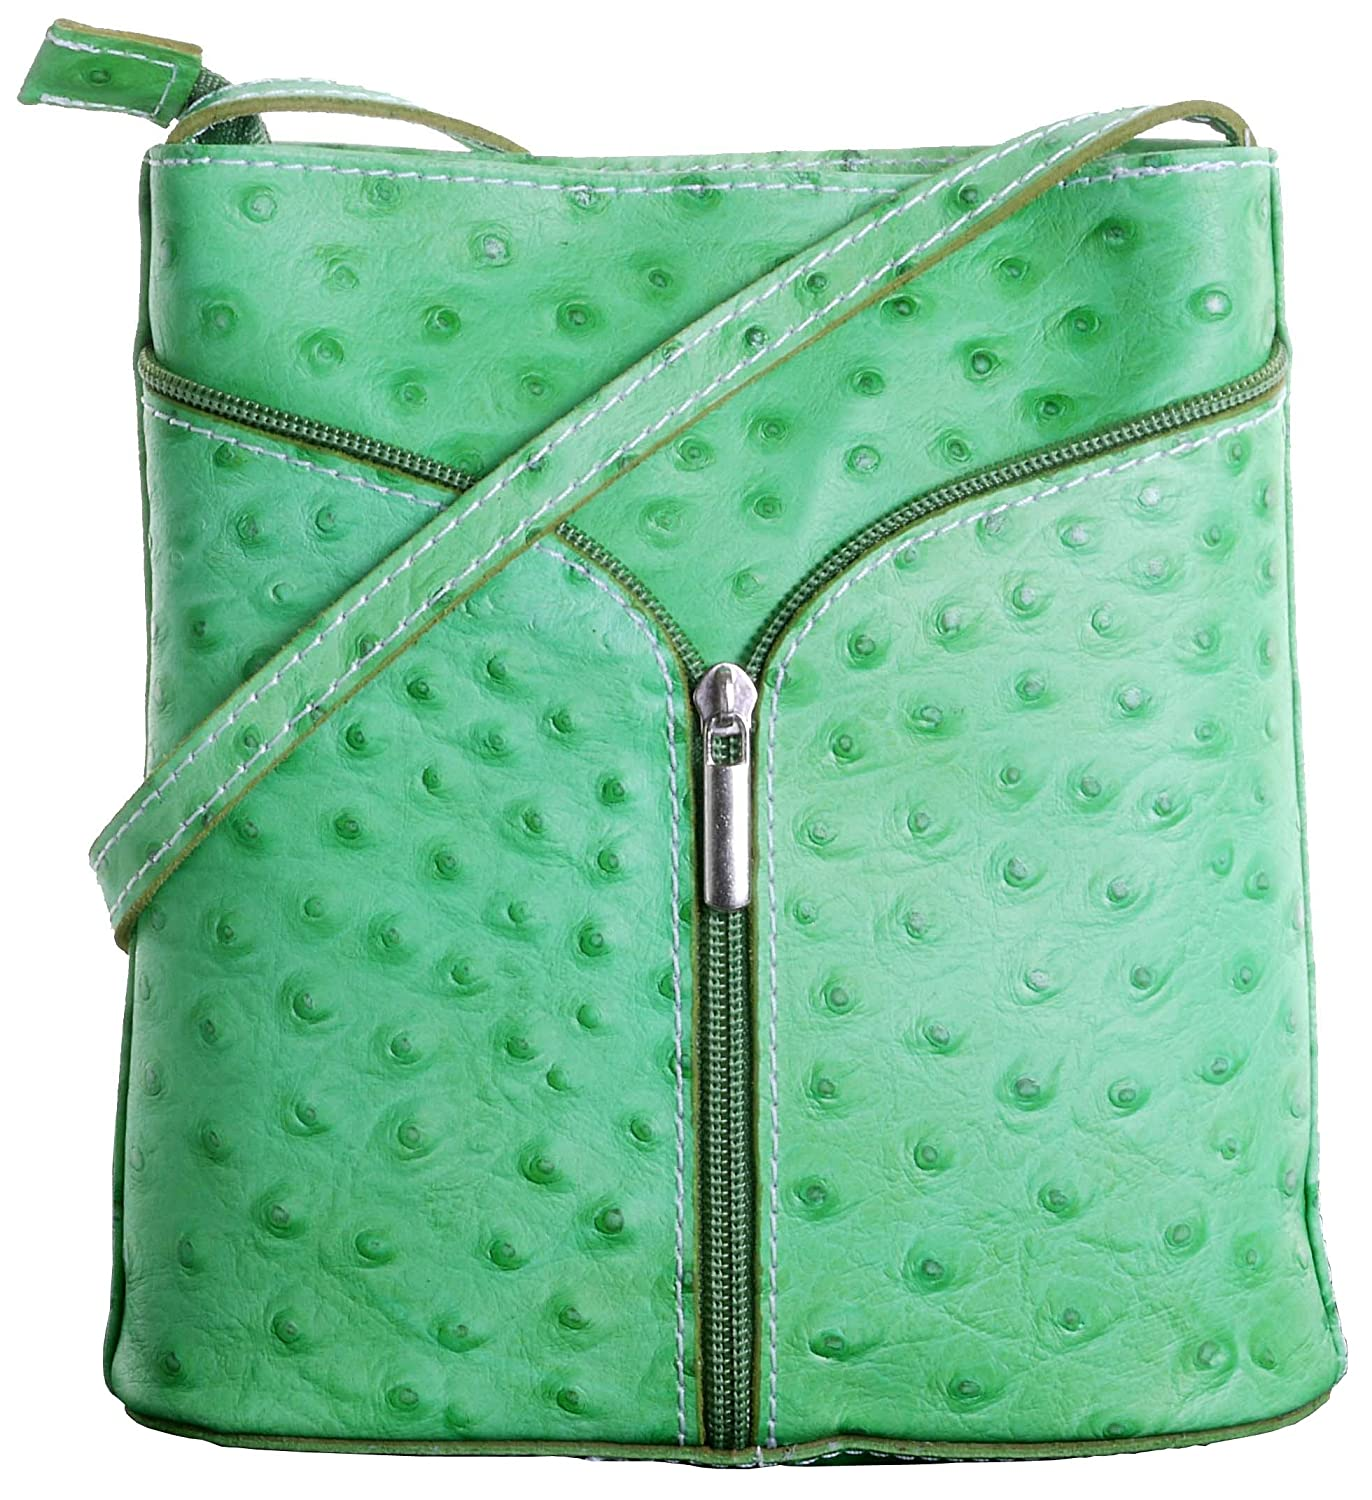 Small Ostrich Effect Front Clasp Cross Body or Shoulder Bag Handbag Italian Leather